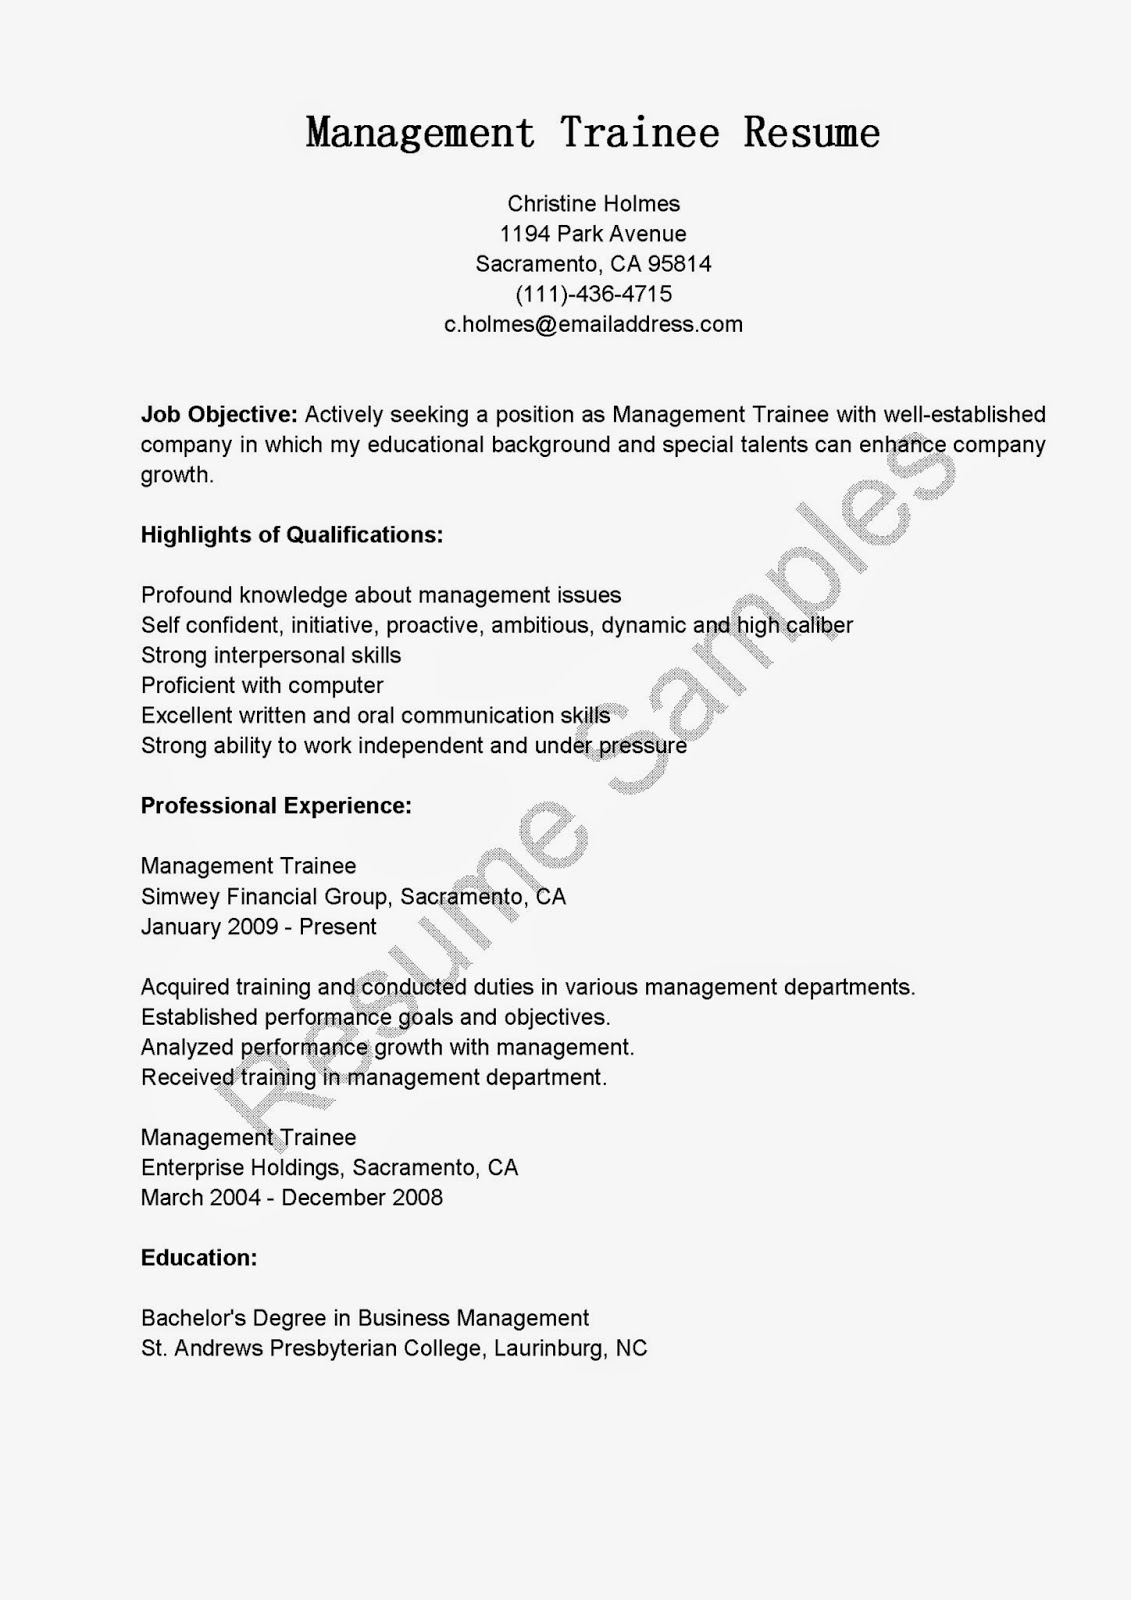 resume sles management trainee resume sle